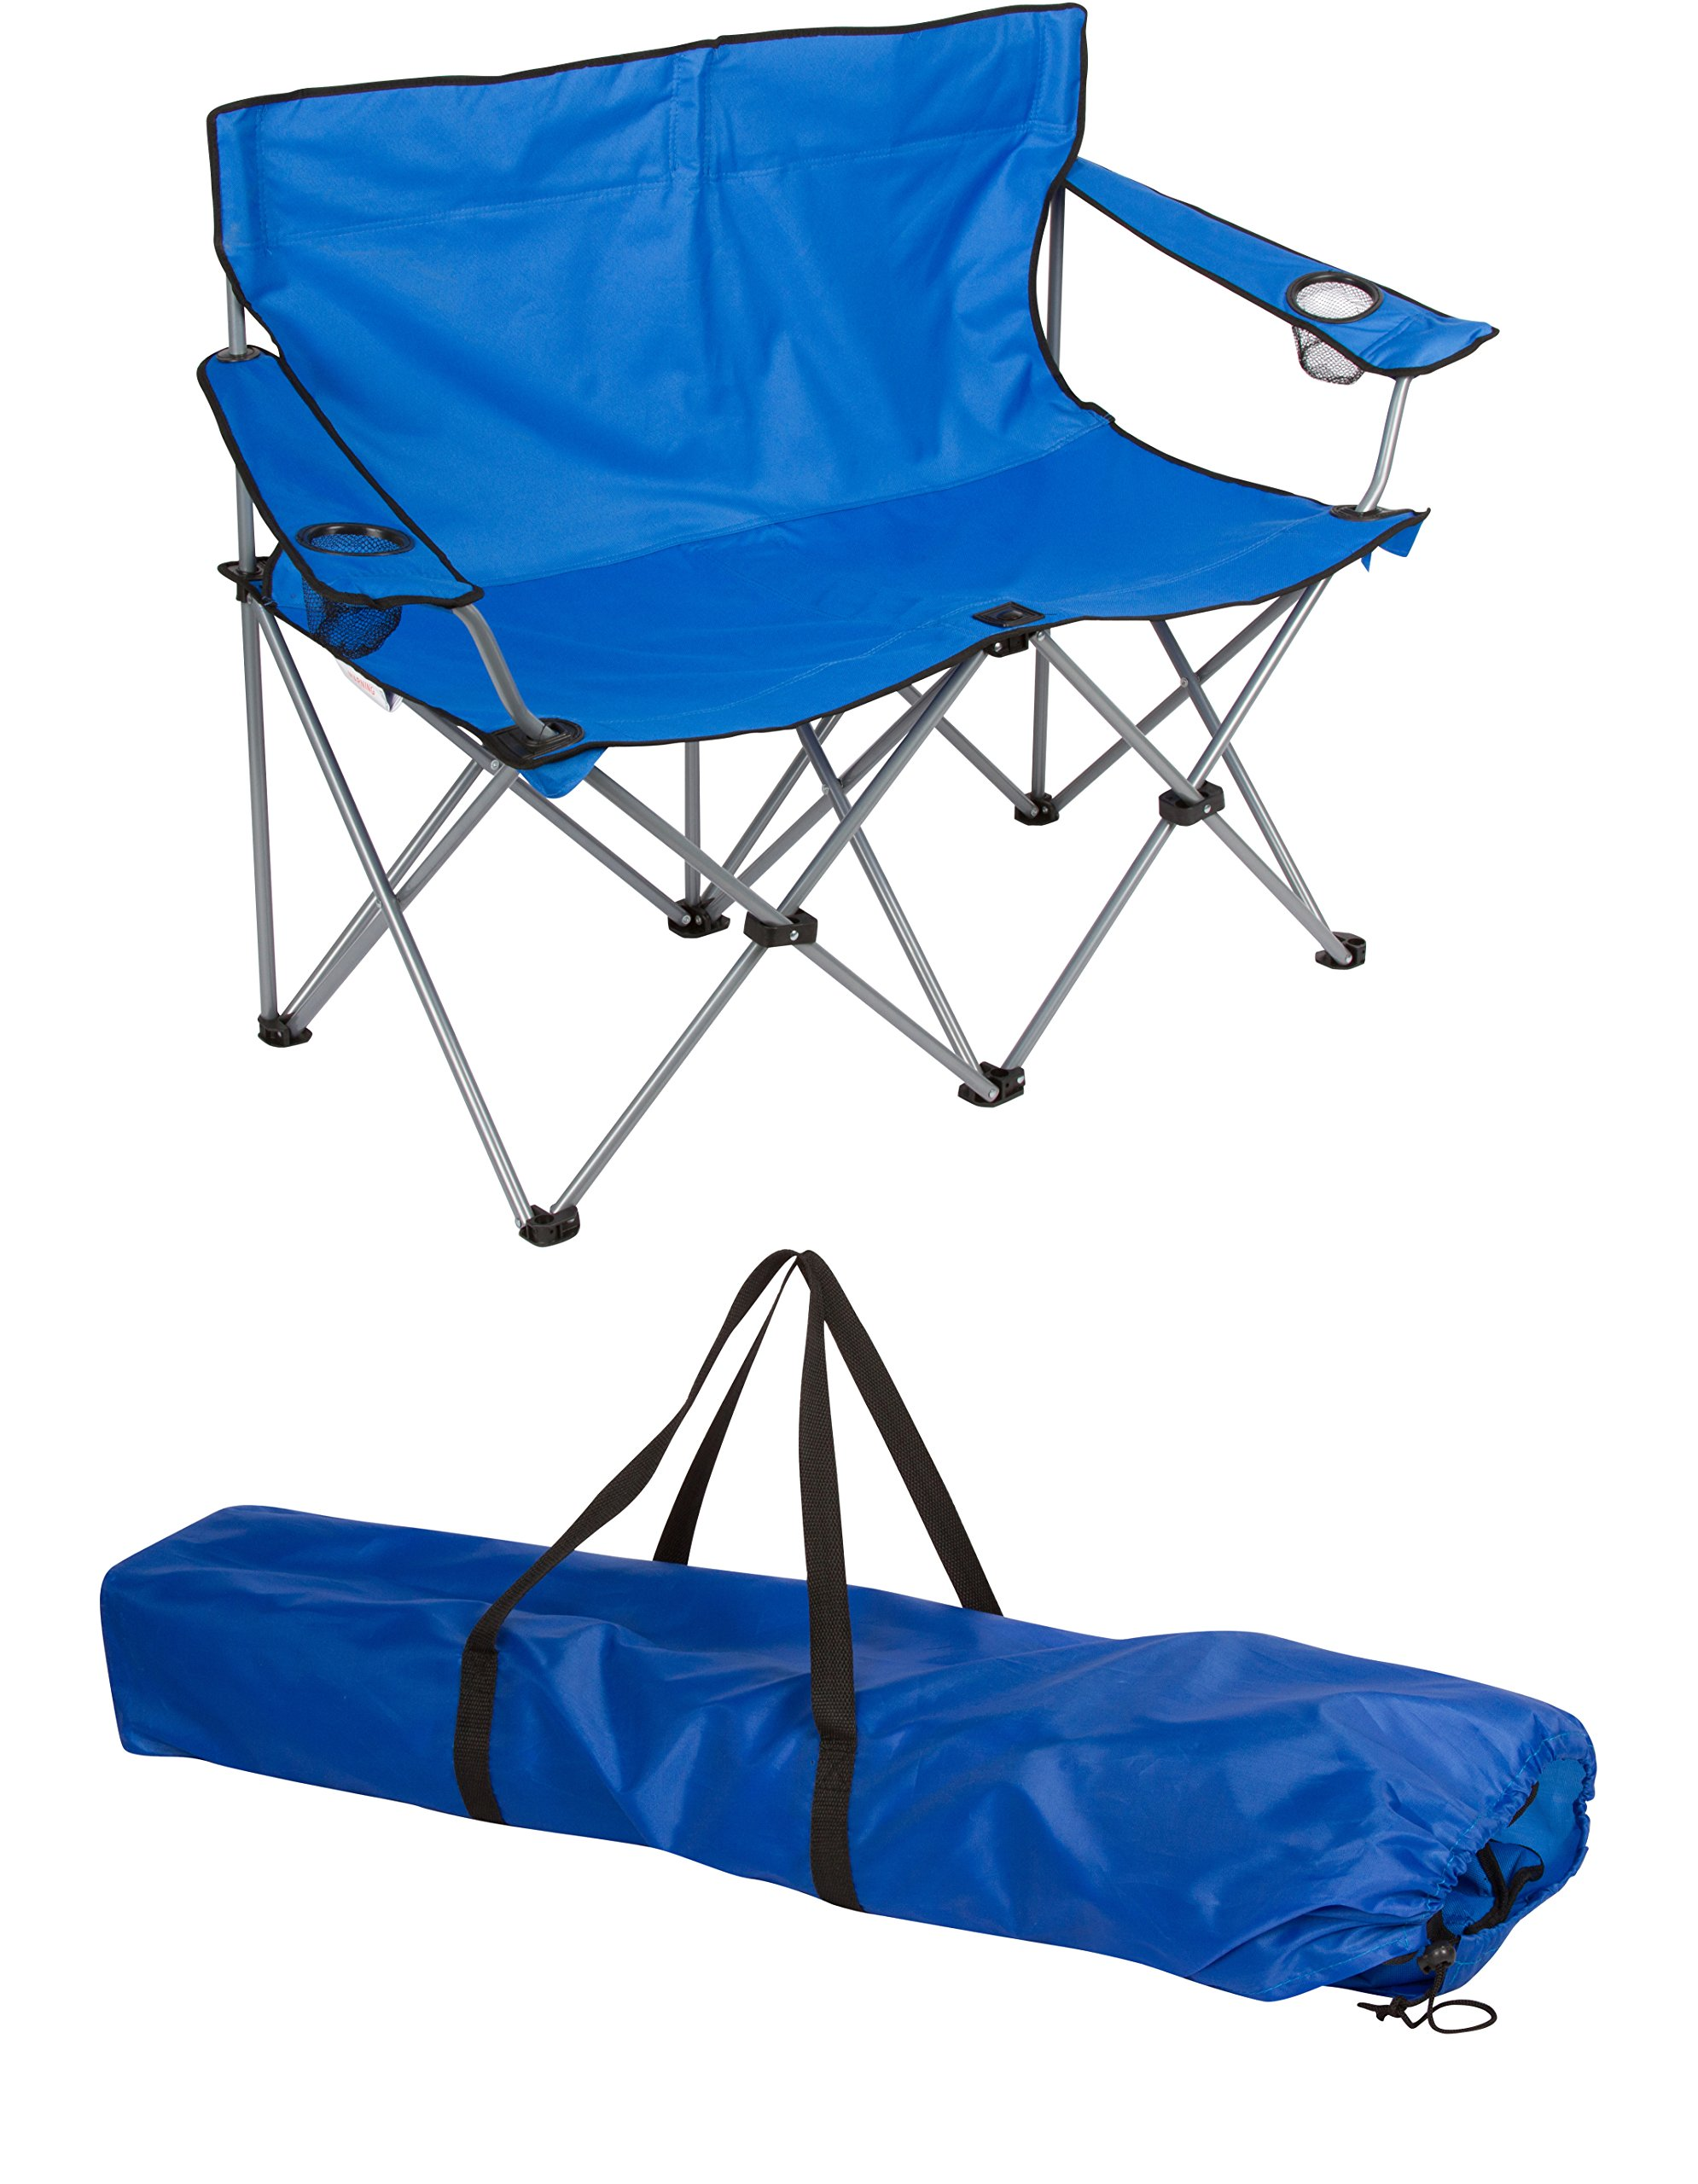 Loveseat Style Camp Chair - Steel Frame - Double Seater - by Trademark Innovations (Blue, 31.5''H) by Trademark Innovations (Image #1)